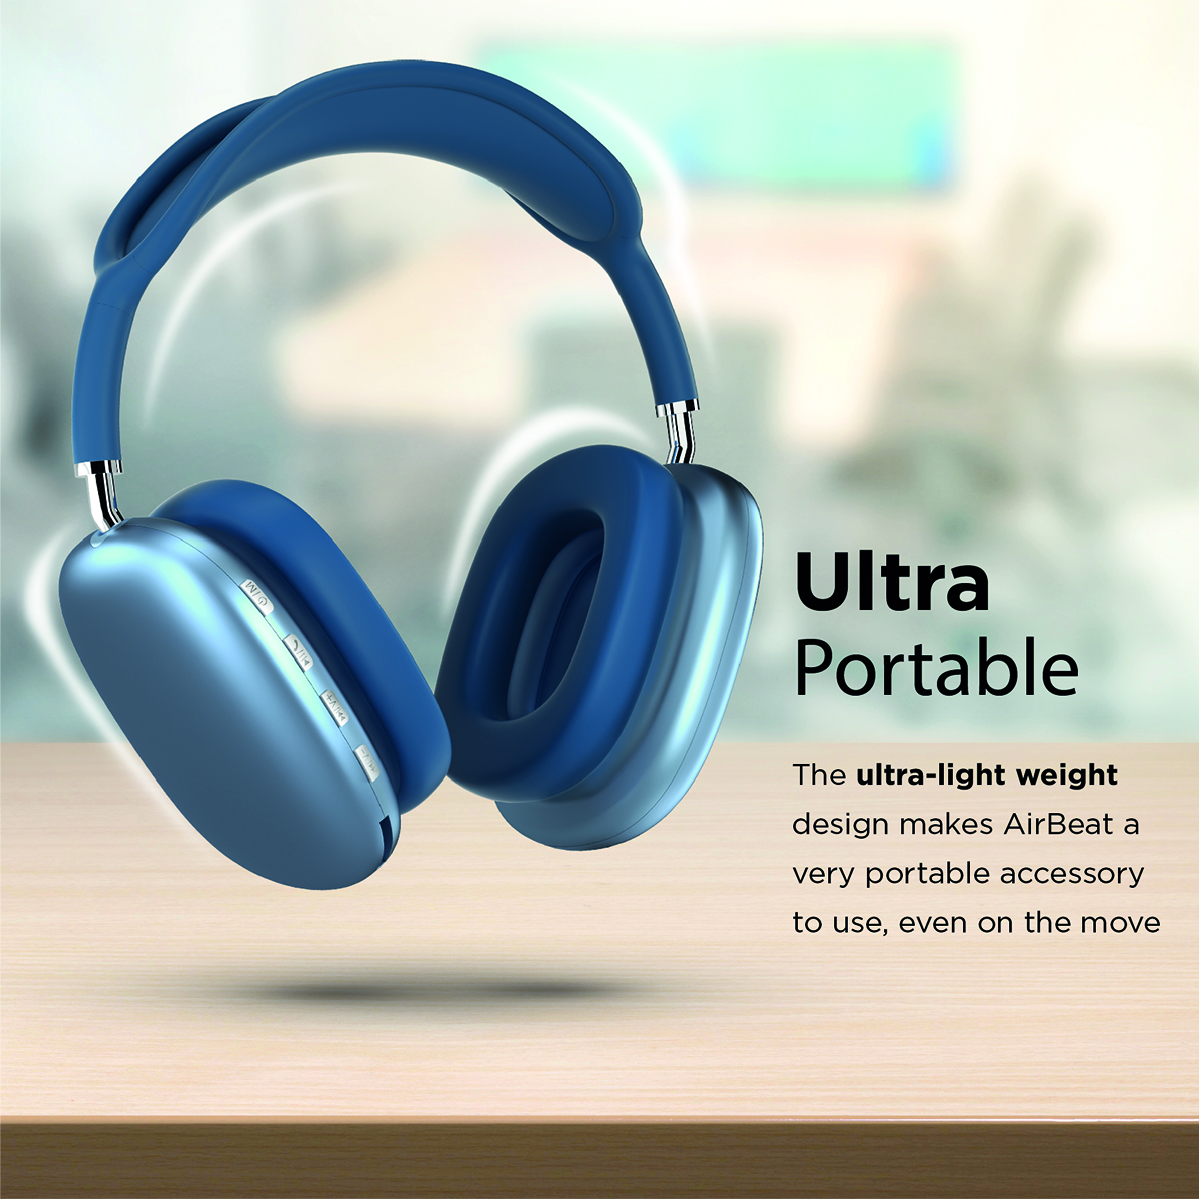 Promate Wireless Bluetooth Headphones, Ergonomic Over-Ear Adjustable Bluetooth 5.0 Headset with Mic, FM Radio, TF Card Slot and Wired Mode 3.5mm Jack for iPhone 12, Gym, Travel, Office, AirBeat Blue